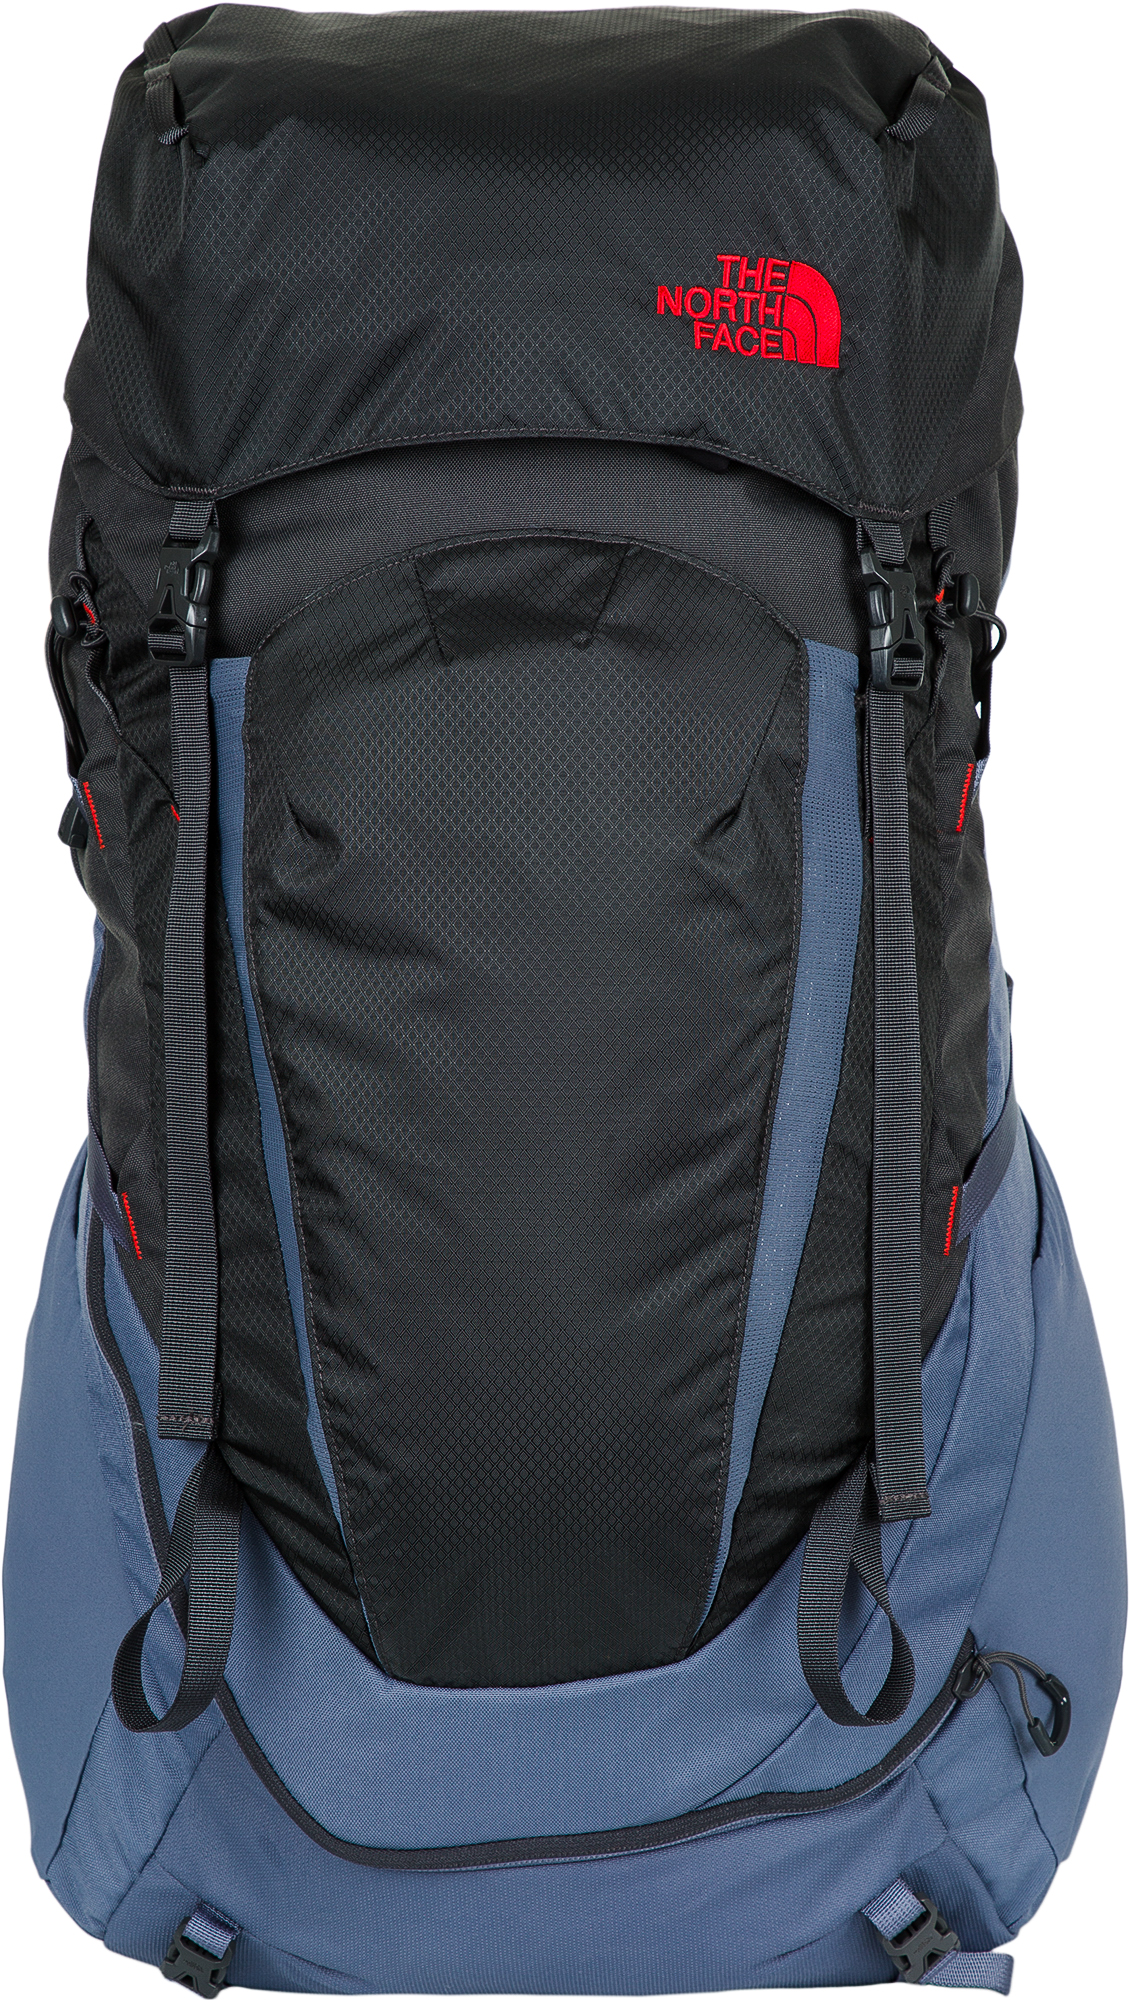 The North Face The North Face Terra 55